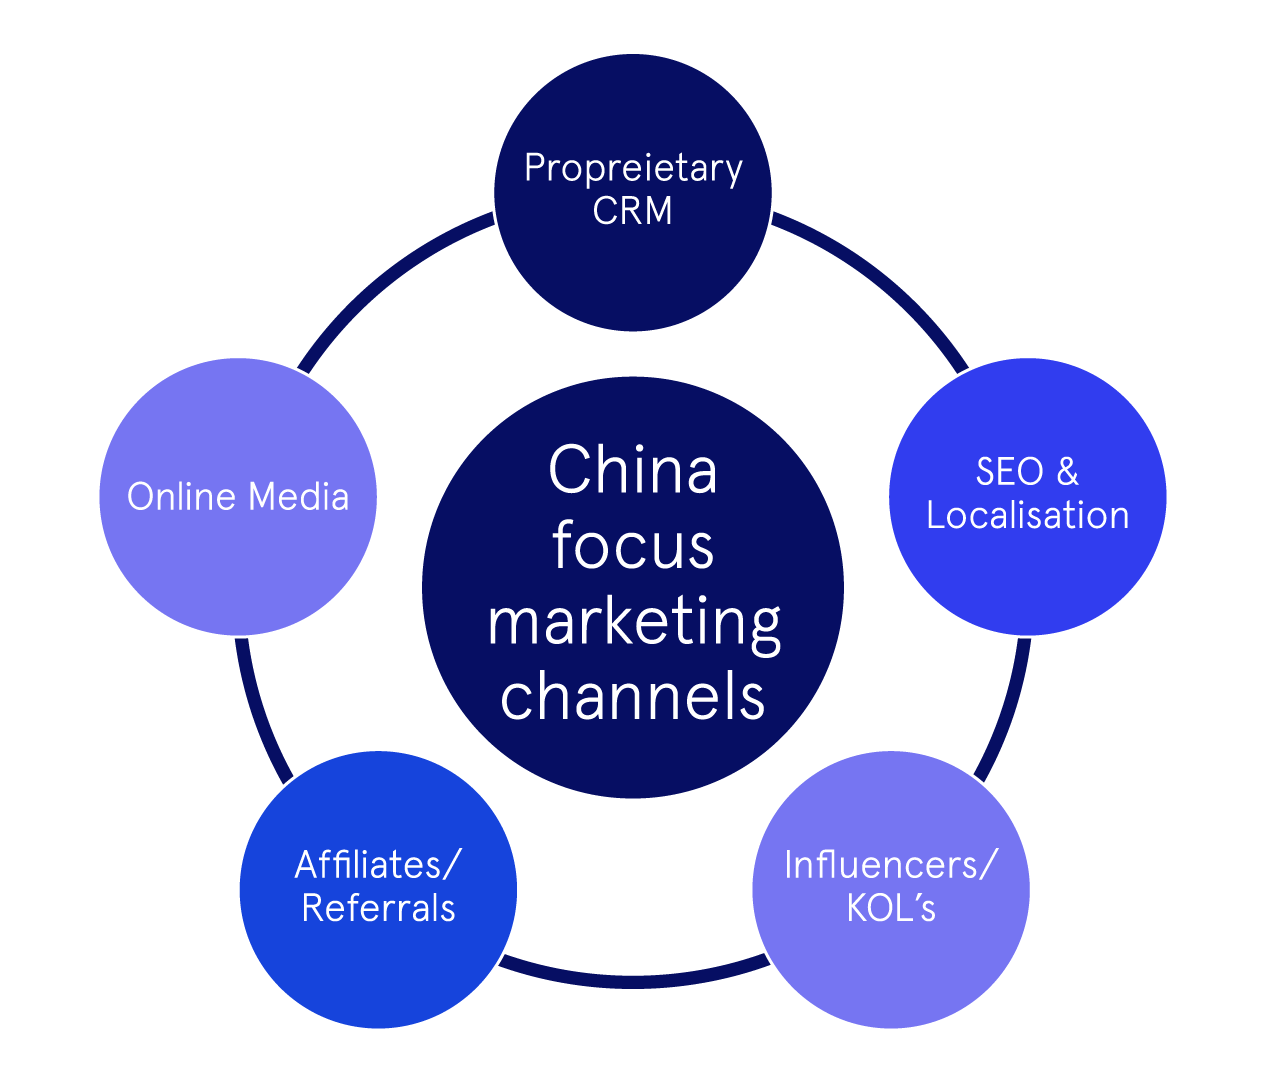 """A schematic design with """"China focus marketing channels"""" in the centre. It's surrounded by the following circles: Proprietary CRM, Online media, SEO and localization, Affiliates and referrals, Influencers and KOLs."""